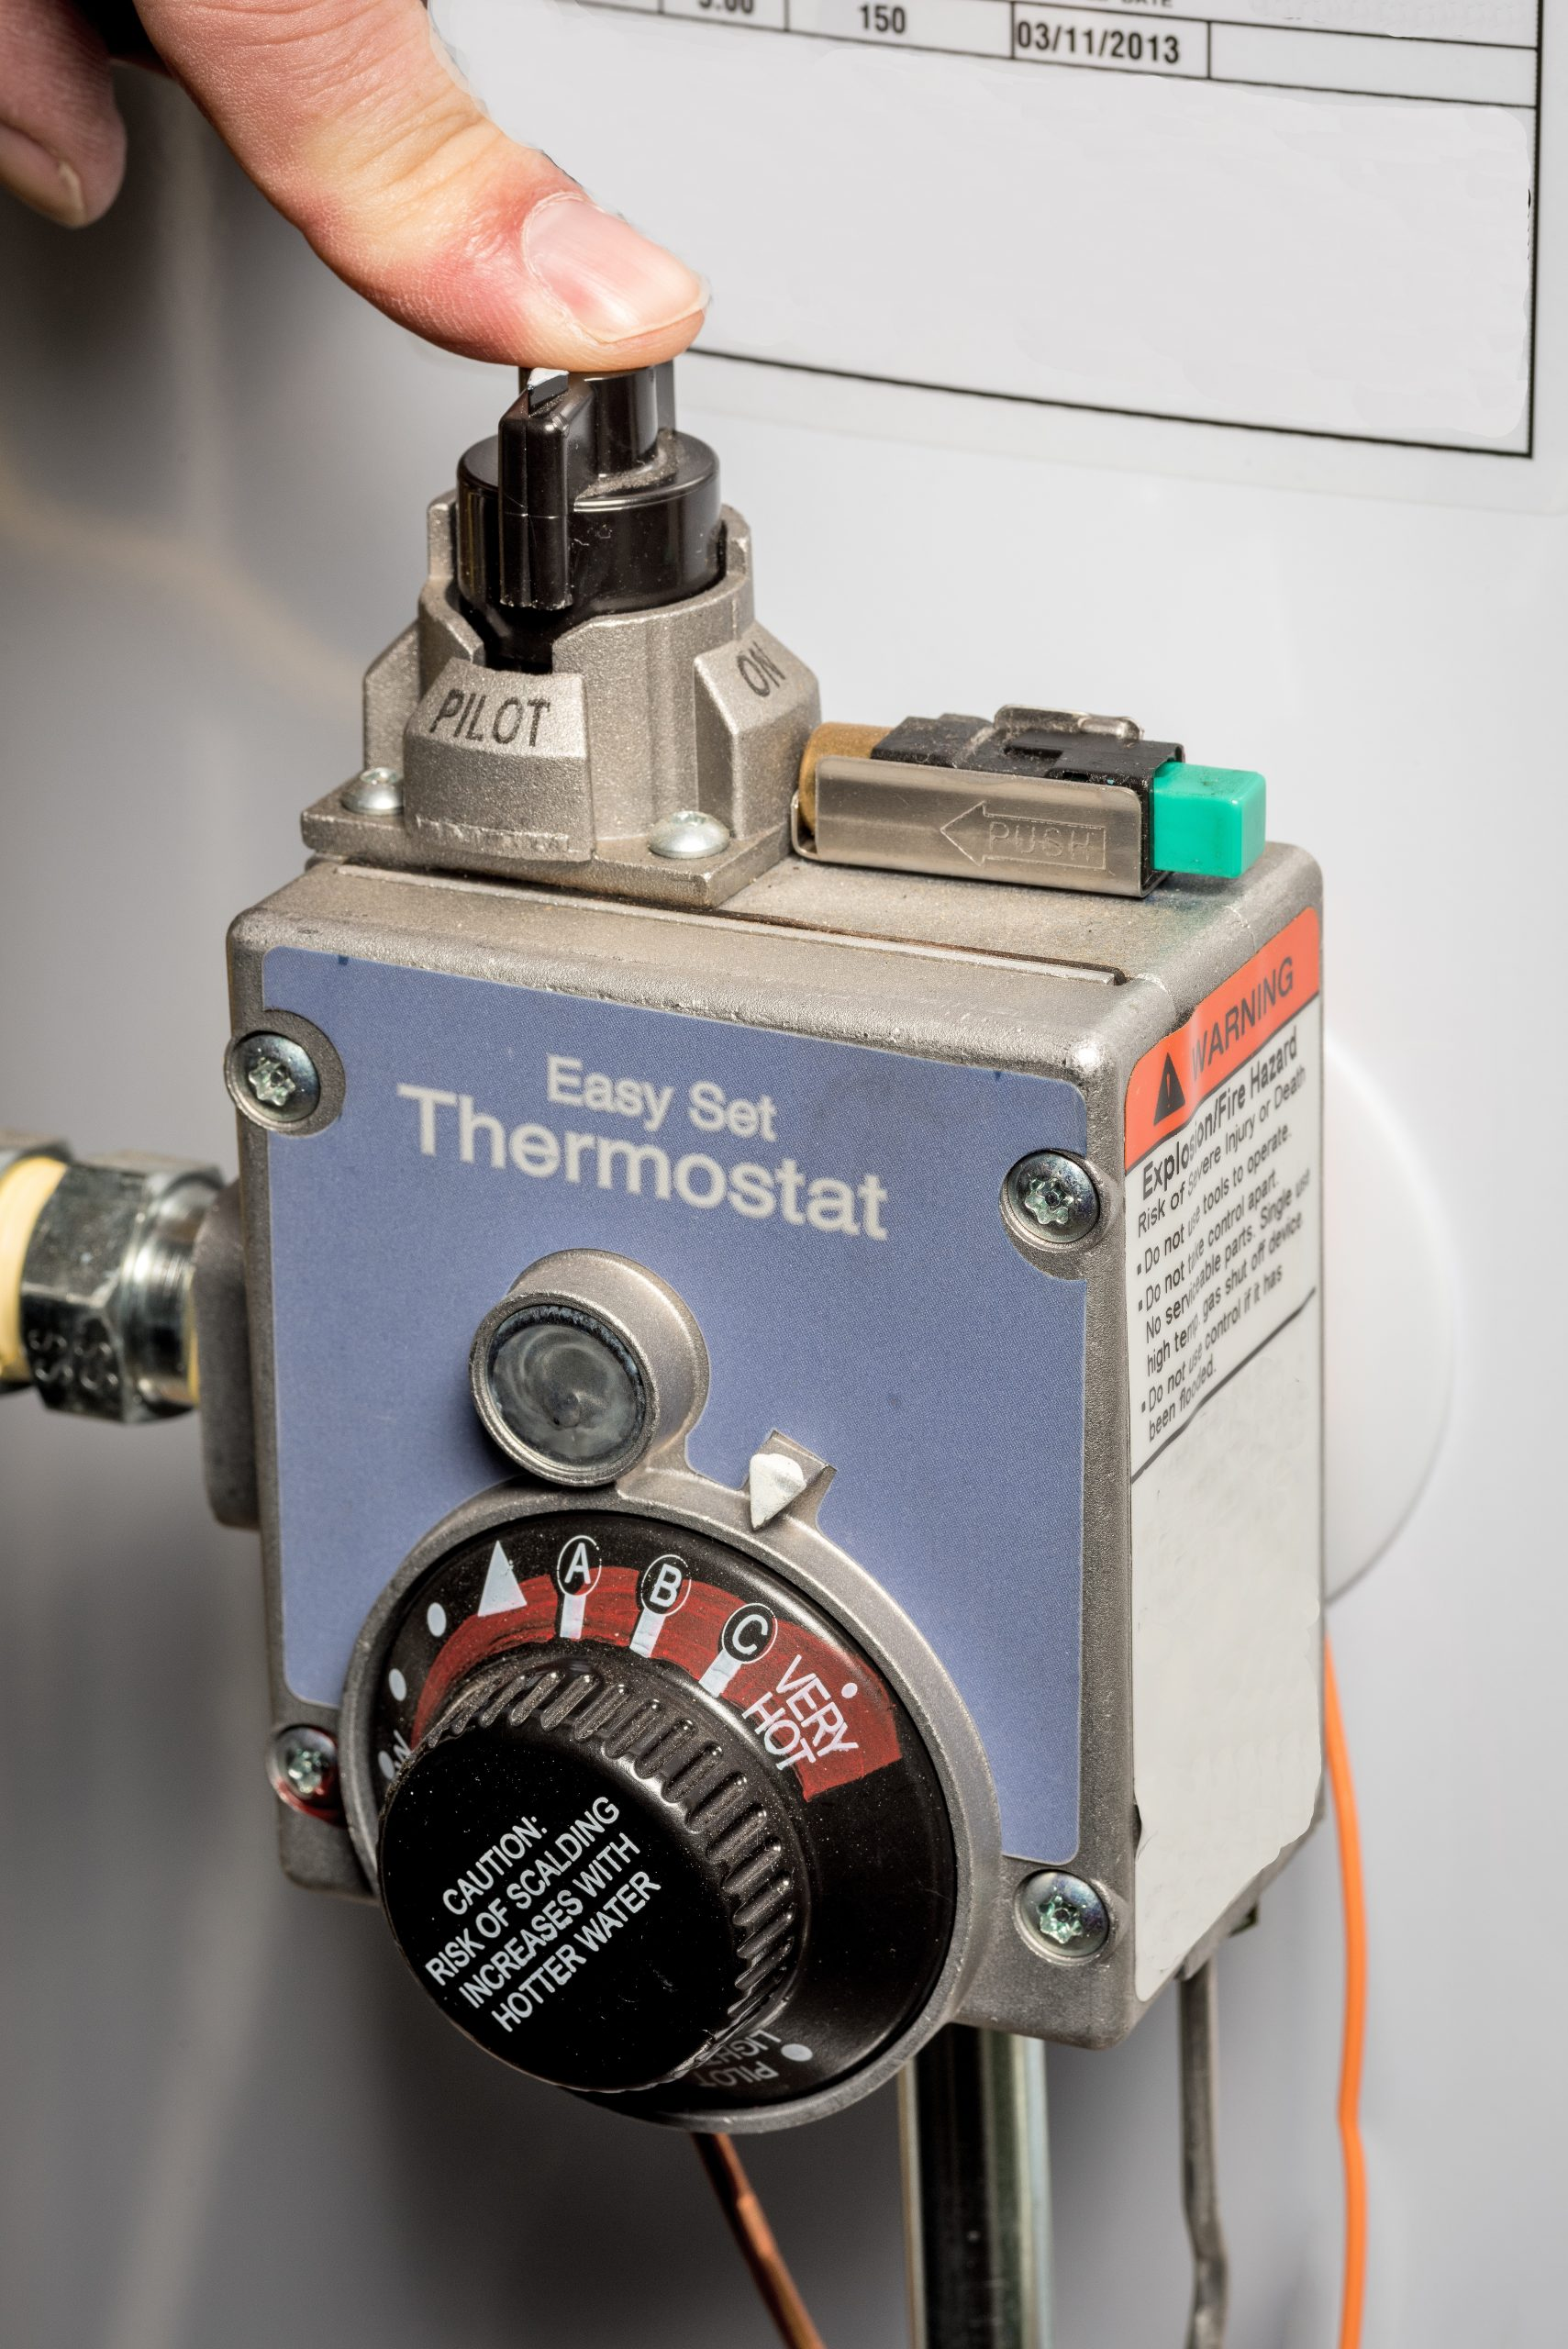 Ho to relight a pilot light | Pittsburgh | Terry's Plumbing